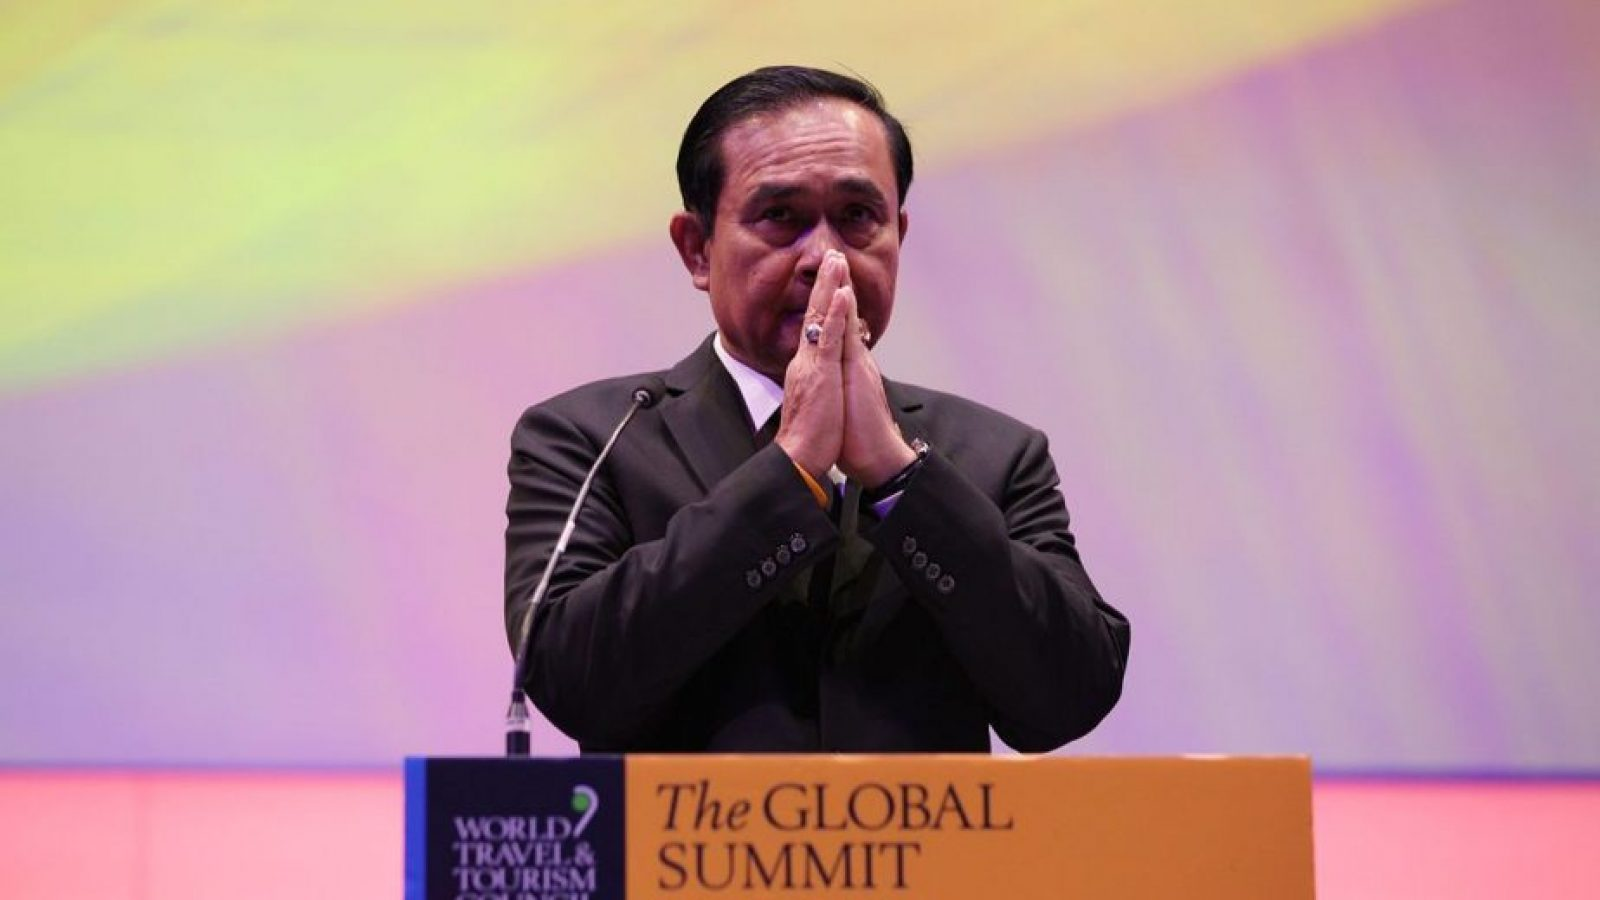 The Thai Prime Minister clasps his hands together behind a podium at The Global Summit in Bangkok